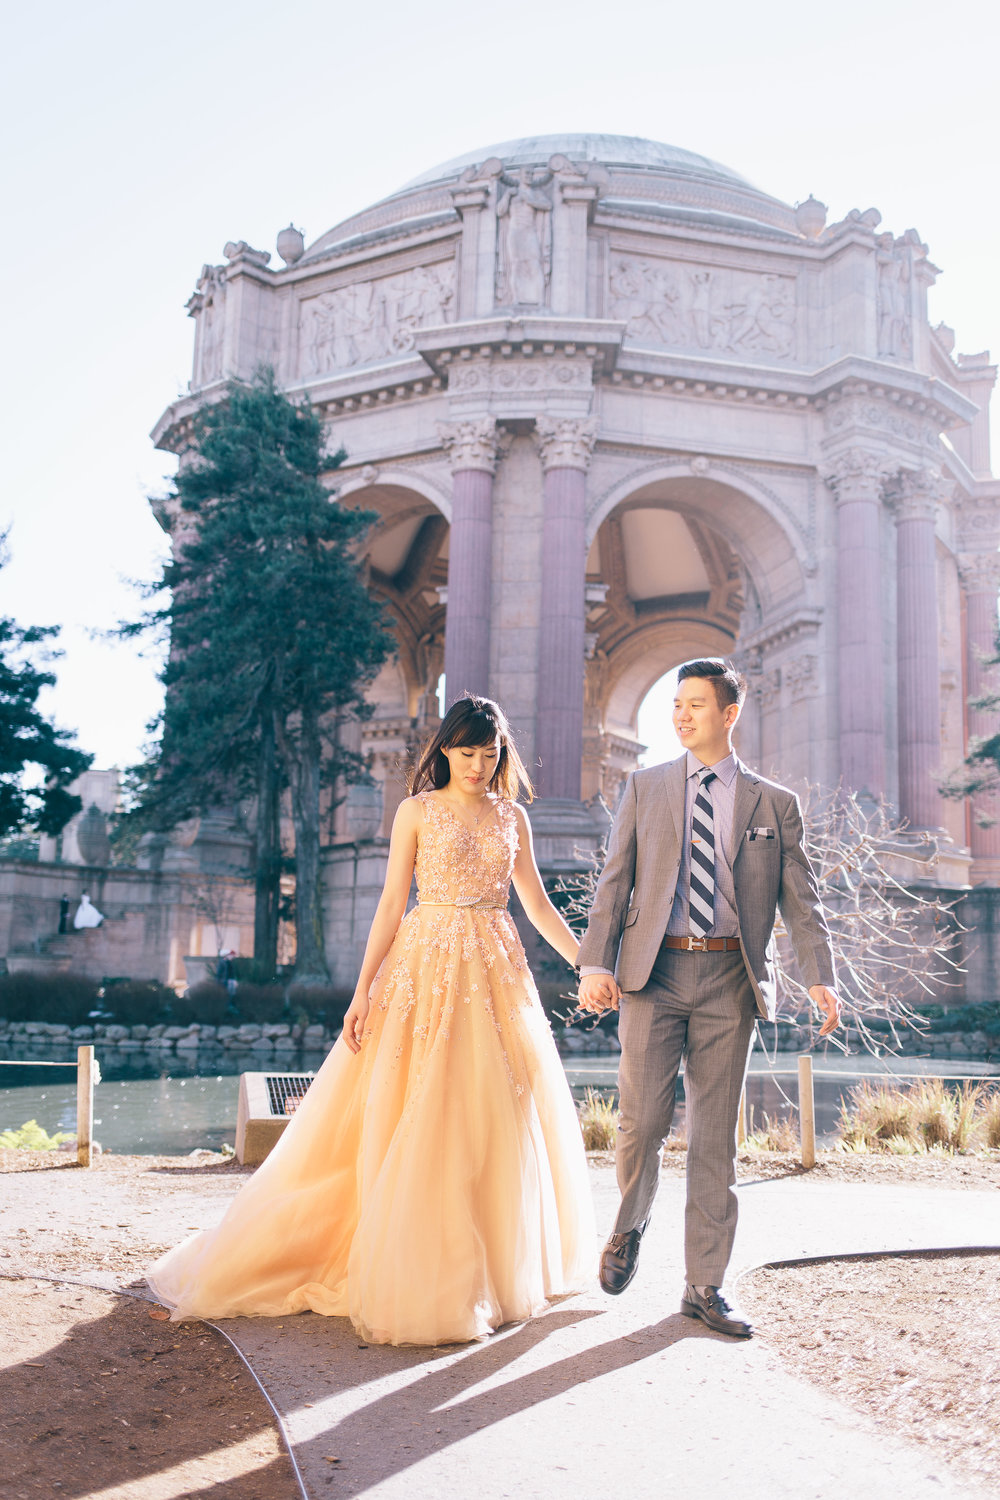 Best Engagement Photo Locations in San Francisco - Palace of Fine Arts Engagement Photos by JBJ Pictures (10).jpg